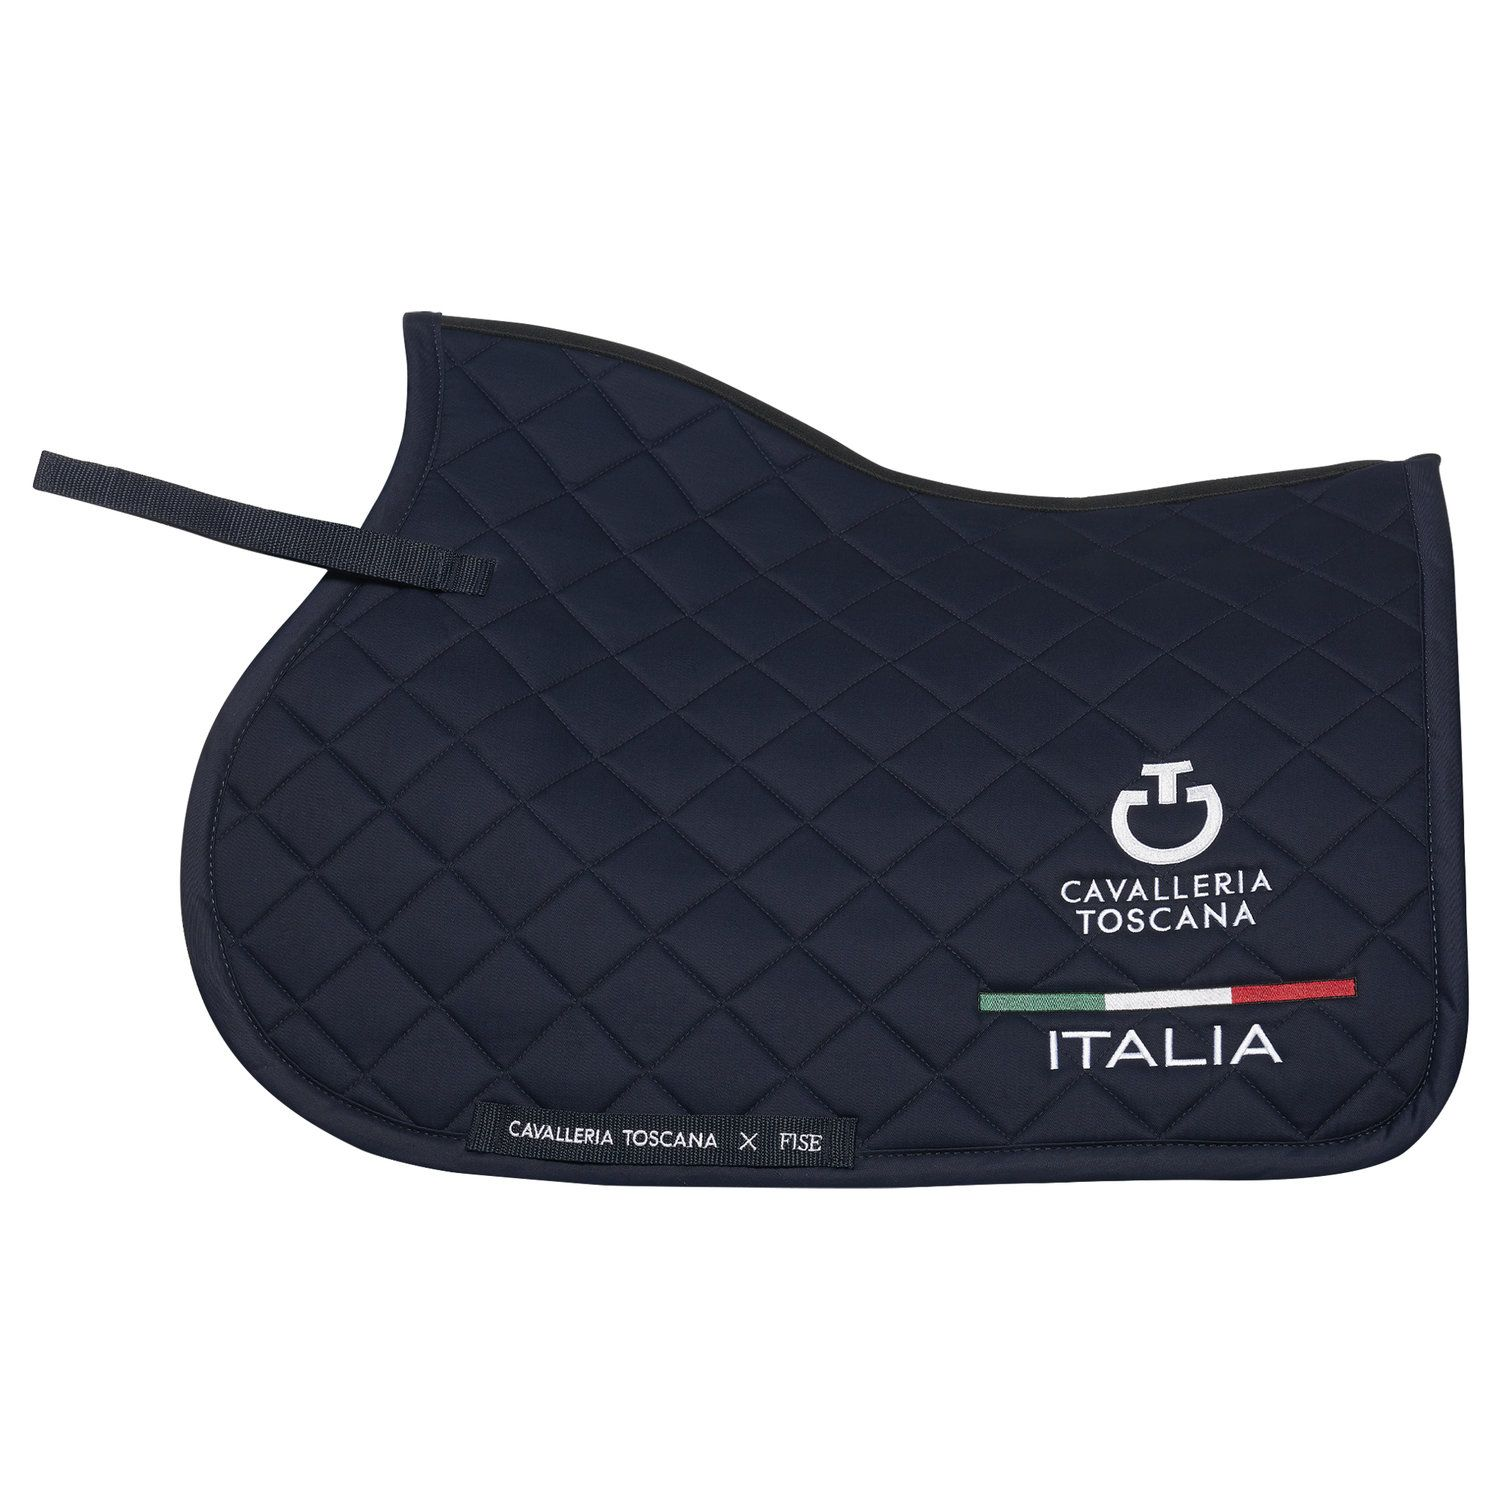 FISE jumping saddle pad